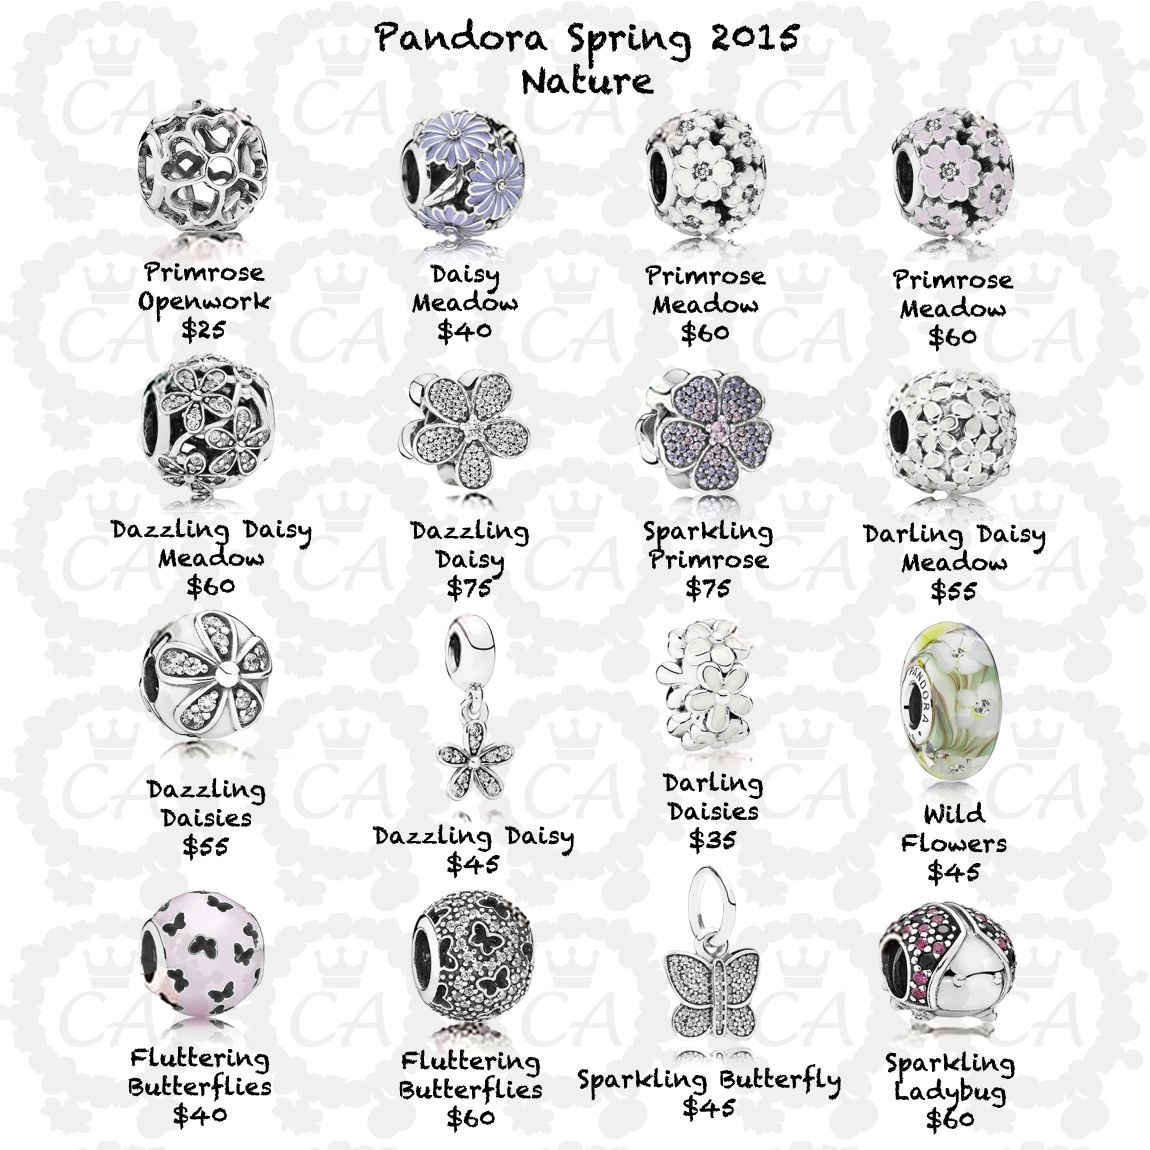 Specials On Pandora Bracelets Prices Of Pandora Charms